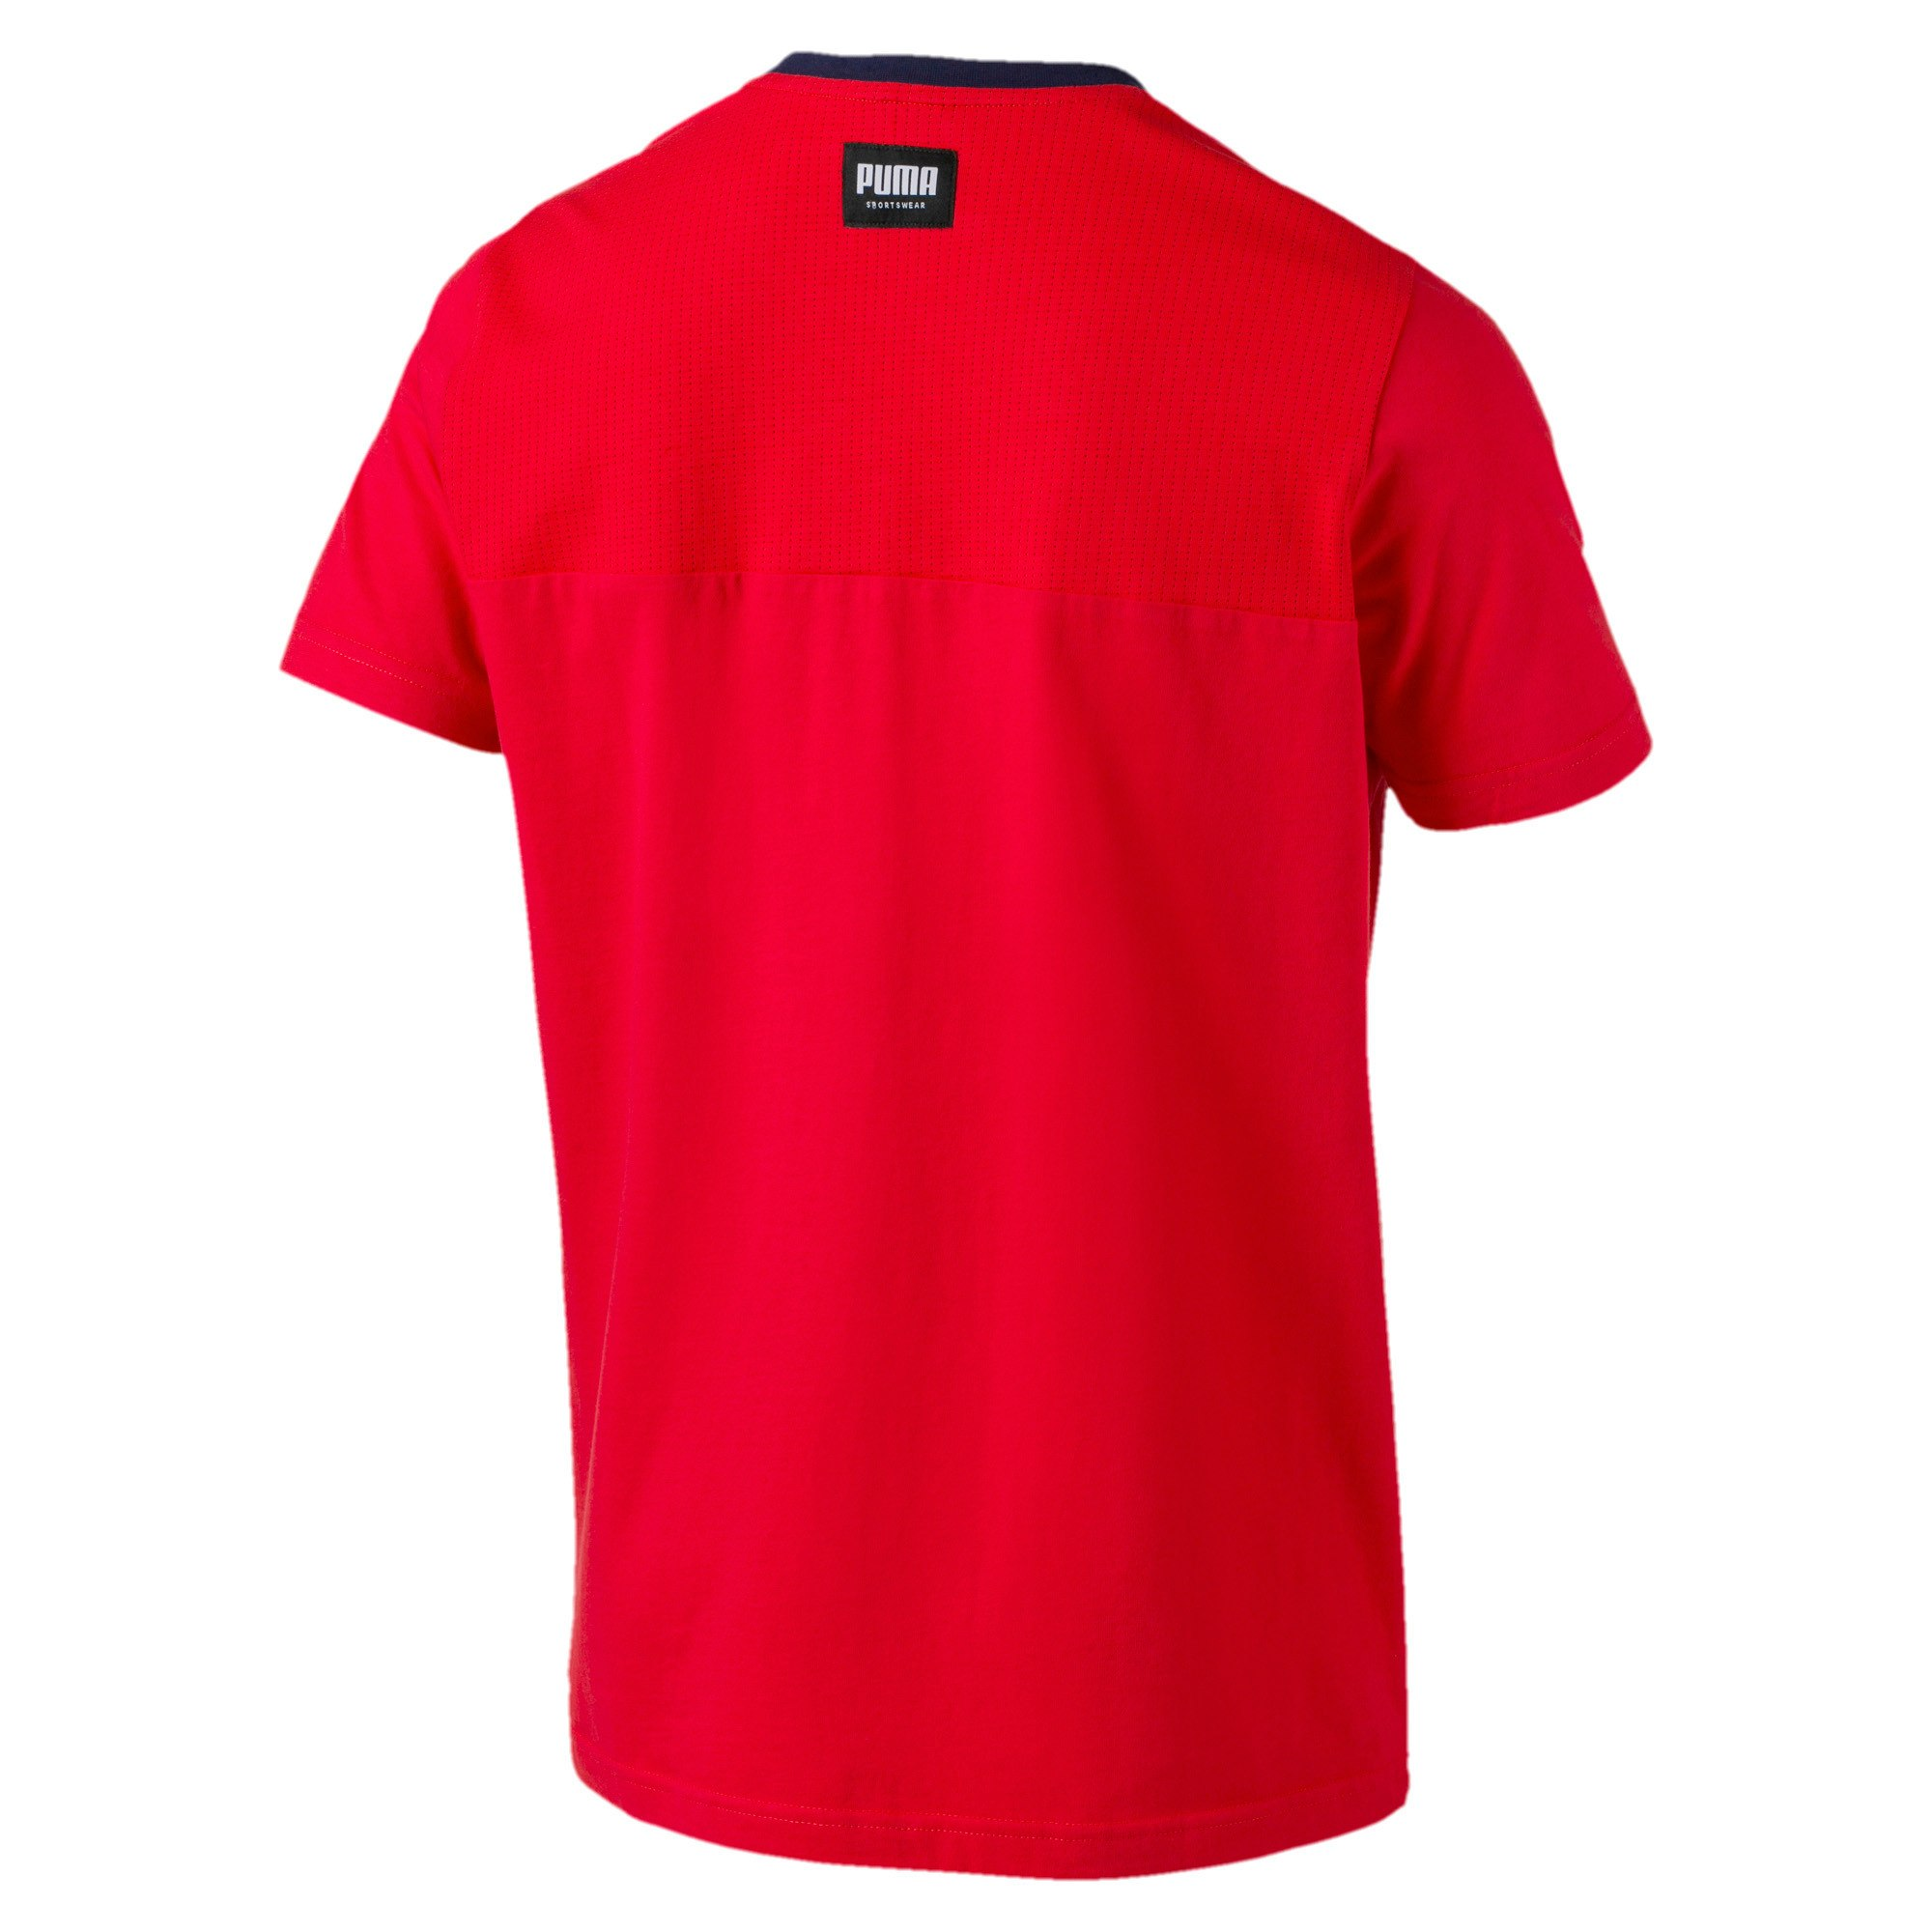 Thumbnail 5 of Athletics Men's Elevated Tee, High Risk Red, medium-IND